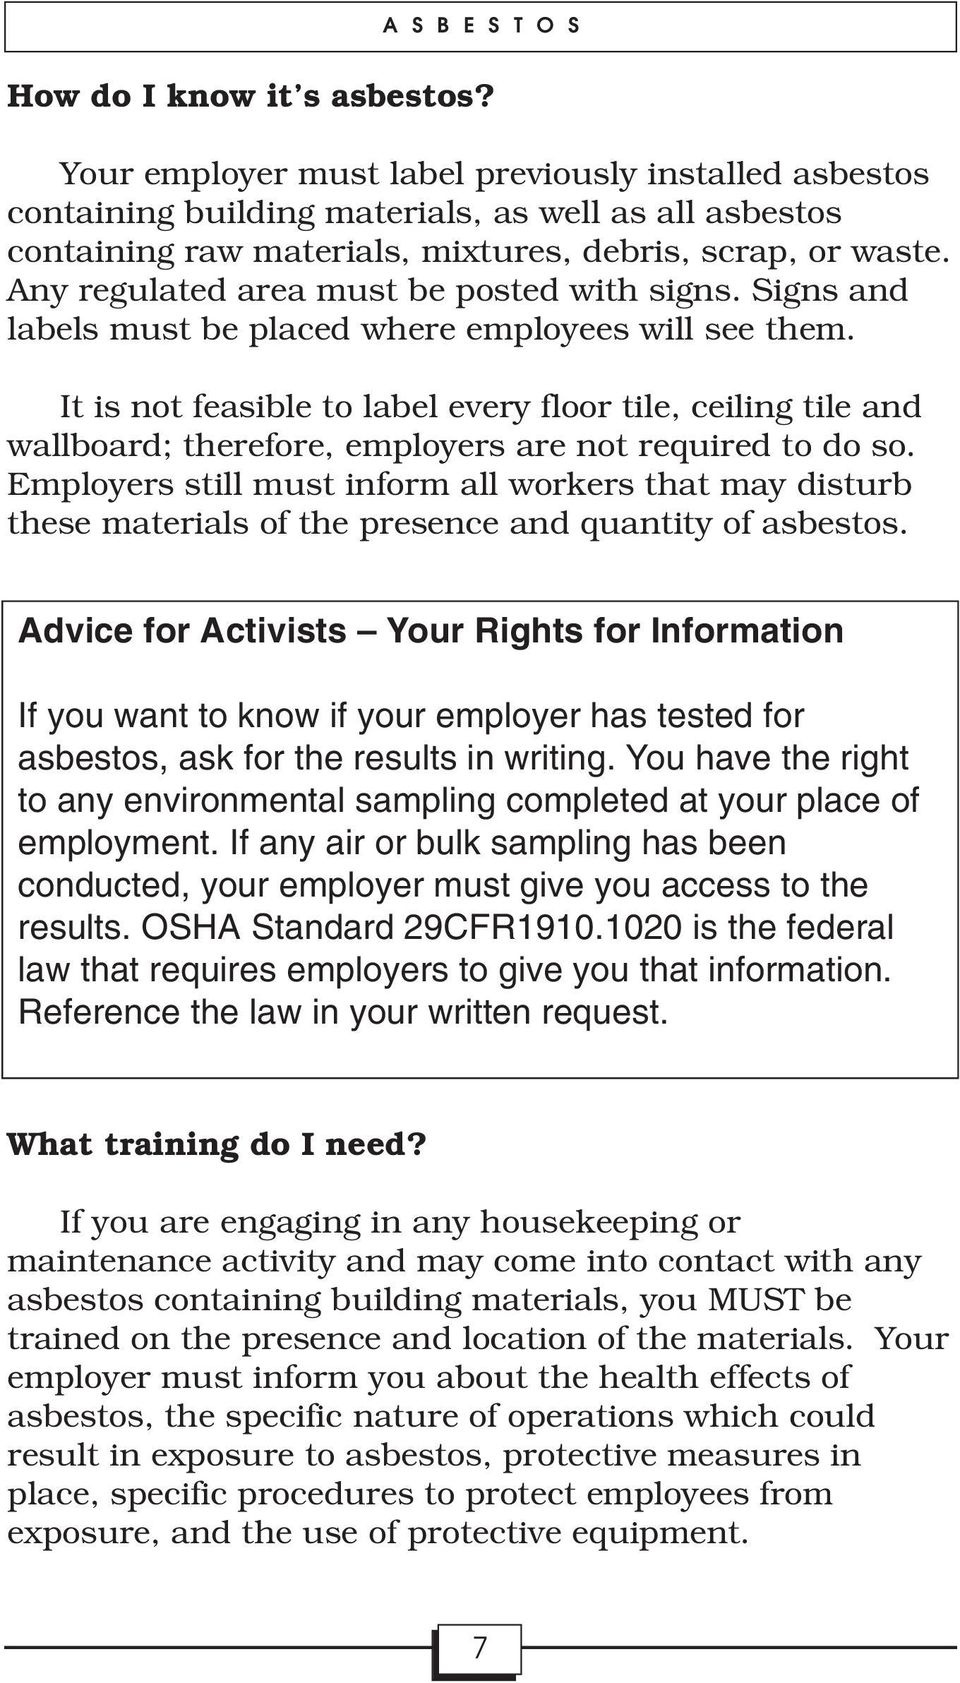 It is not feasible to label every floor tile, ceiling tile and wallboard; therefore, employers are not required to do so.